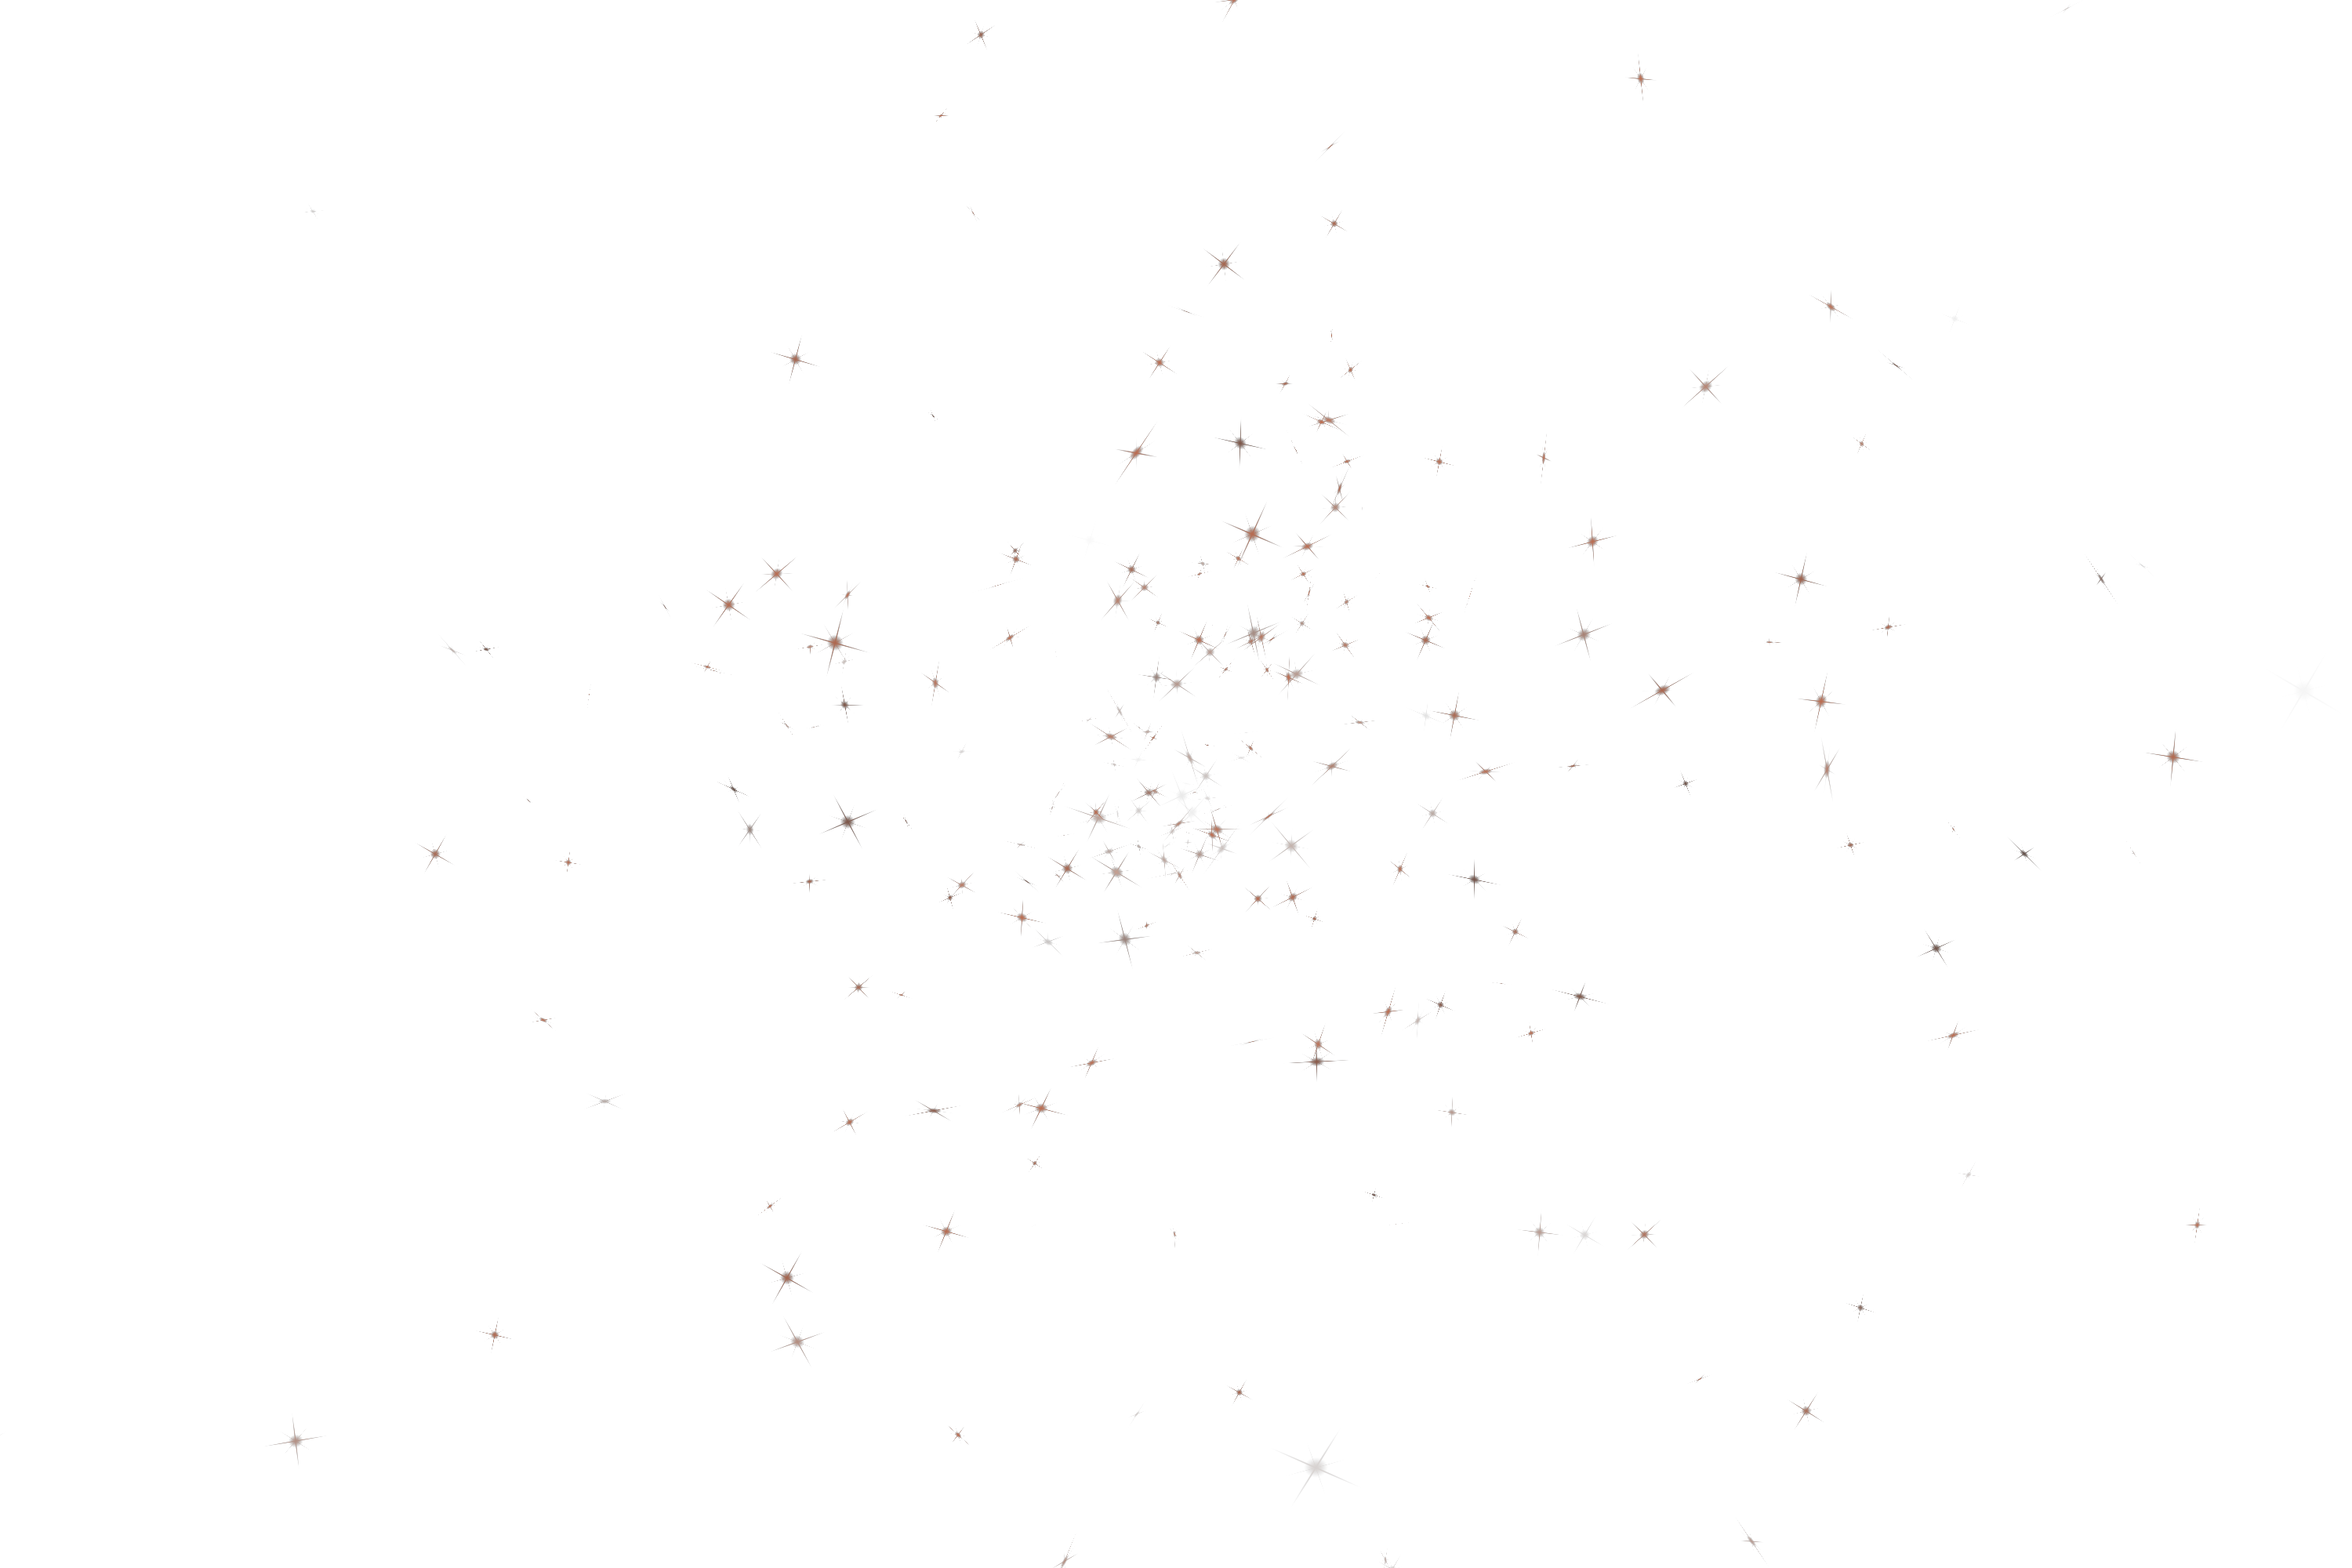 Dust particles png. Transparent images all free